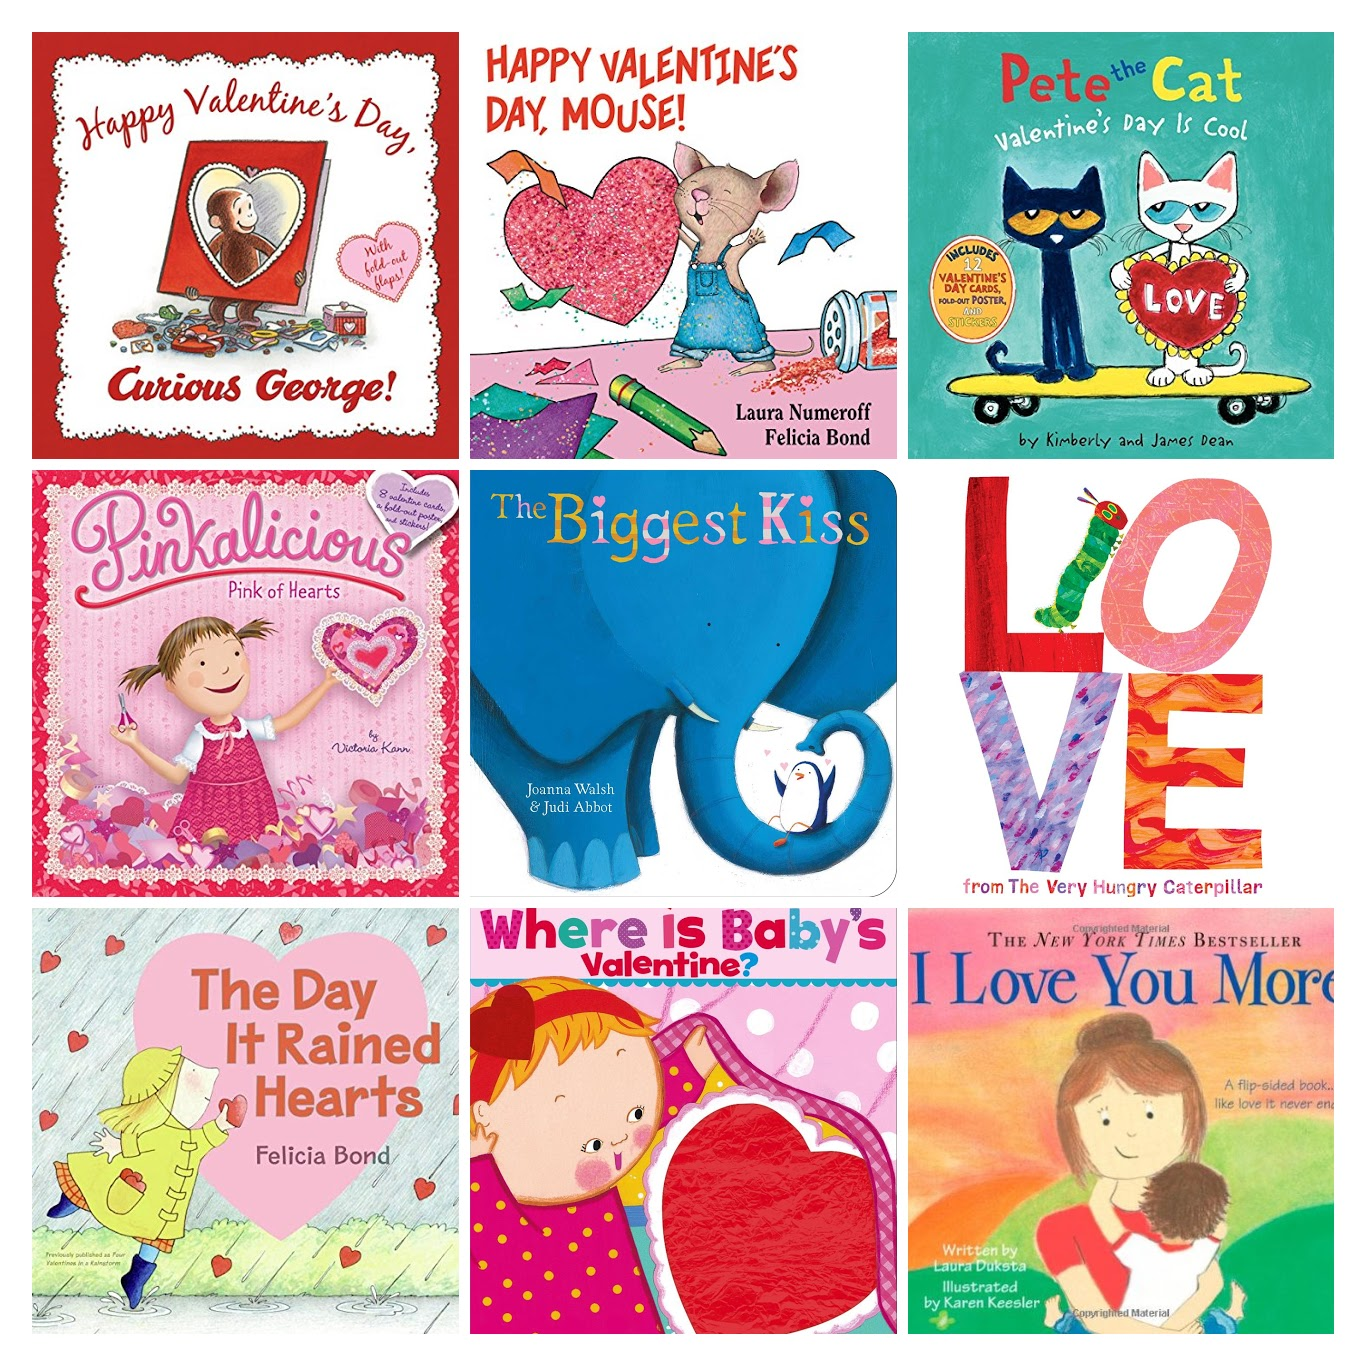 If You're Like Me And Resolved This Year To Be A Little More On Top Of  Things, Here Are Some Valentine's Day Book Ideas For Your Littles Almost One  Month In